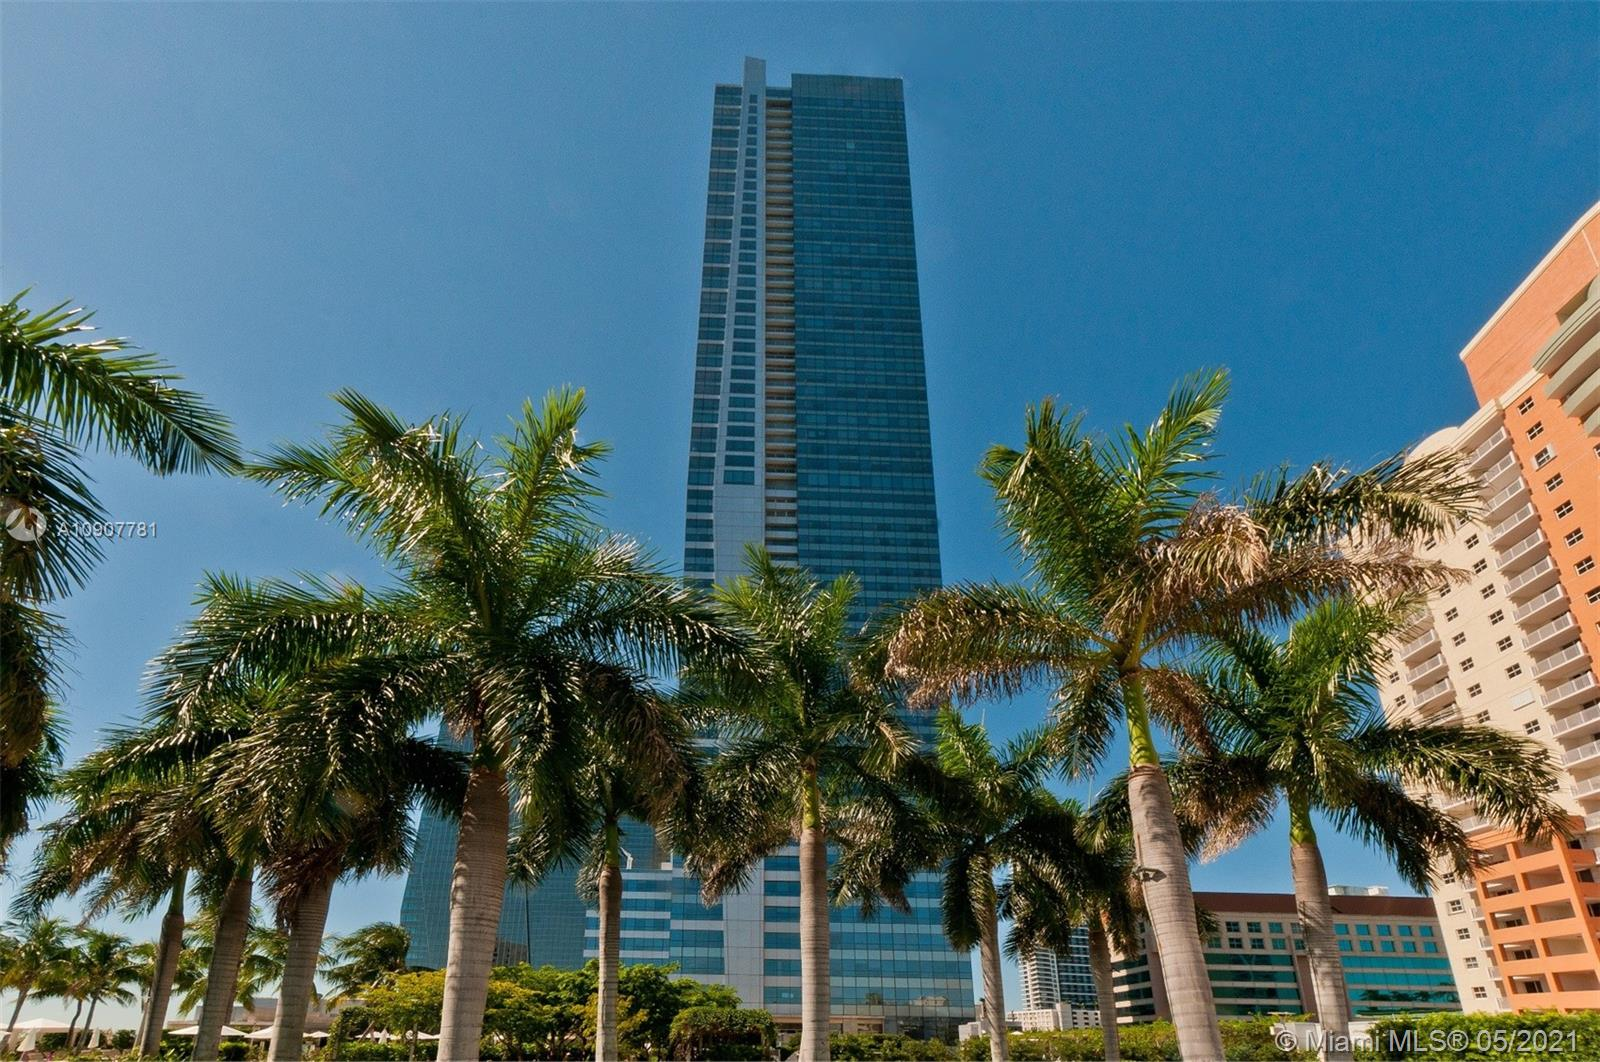 FIVE STAR LIVING AT THE FOUR SEASONS RESIDENCES MIAMI. THIS MAGNIFICENT CORNER RESIDENCE LOCATED ON THE 53RD FLOOR OFFERS STUNNING BAY, OCEAN AND CITY VIEWS. FINISHES INCLUDE MAHOGANY DOUBLE ENTRANCE DOORS, FLOOR TO CELING WINDOWS, MARBLE FLOORS IN SOCIAL AREAS, ELECTRIC BLINDS, GRANITE COUNTER TOPS, POGGENPOHL KITCHEN CABINETS, MIELE, VIKING AND SUB-ZERO APPLIANCES. ALSO INCLUEDS WASHER AND DRYER IN UNIT AND AN AIR CONDITIONED STORAGE UNIT. LUXURIOUS RETREAT OFFERED BY THE BUILDING & ITS STAFF INCLUDING 3 POOLS WITH CABANAS, ROOM SERVICE, RESTAURANT, 50,000 SQFT OF GYM & SPA, OWNER'S LOUNGE, 24 HOURS CONCIERGE, VALET PARKING & SECURITY.